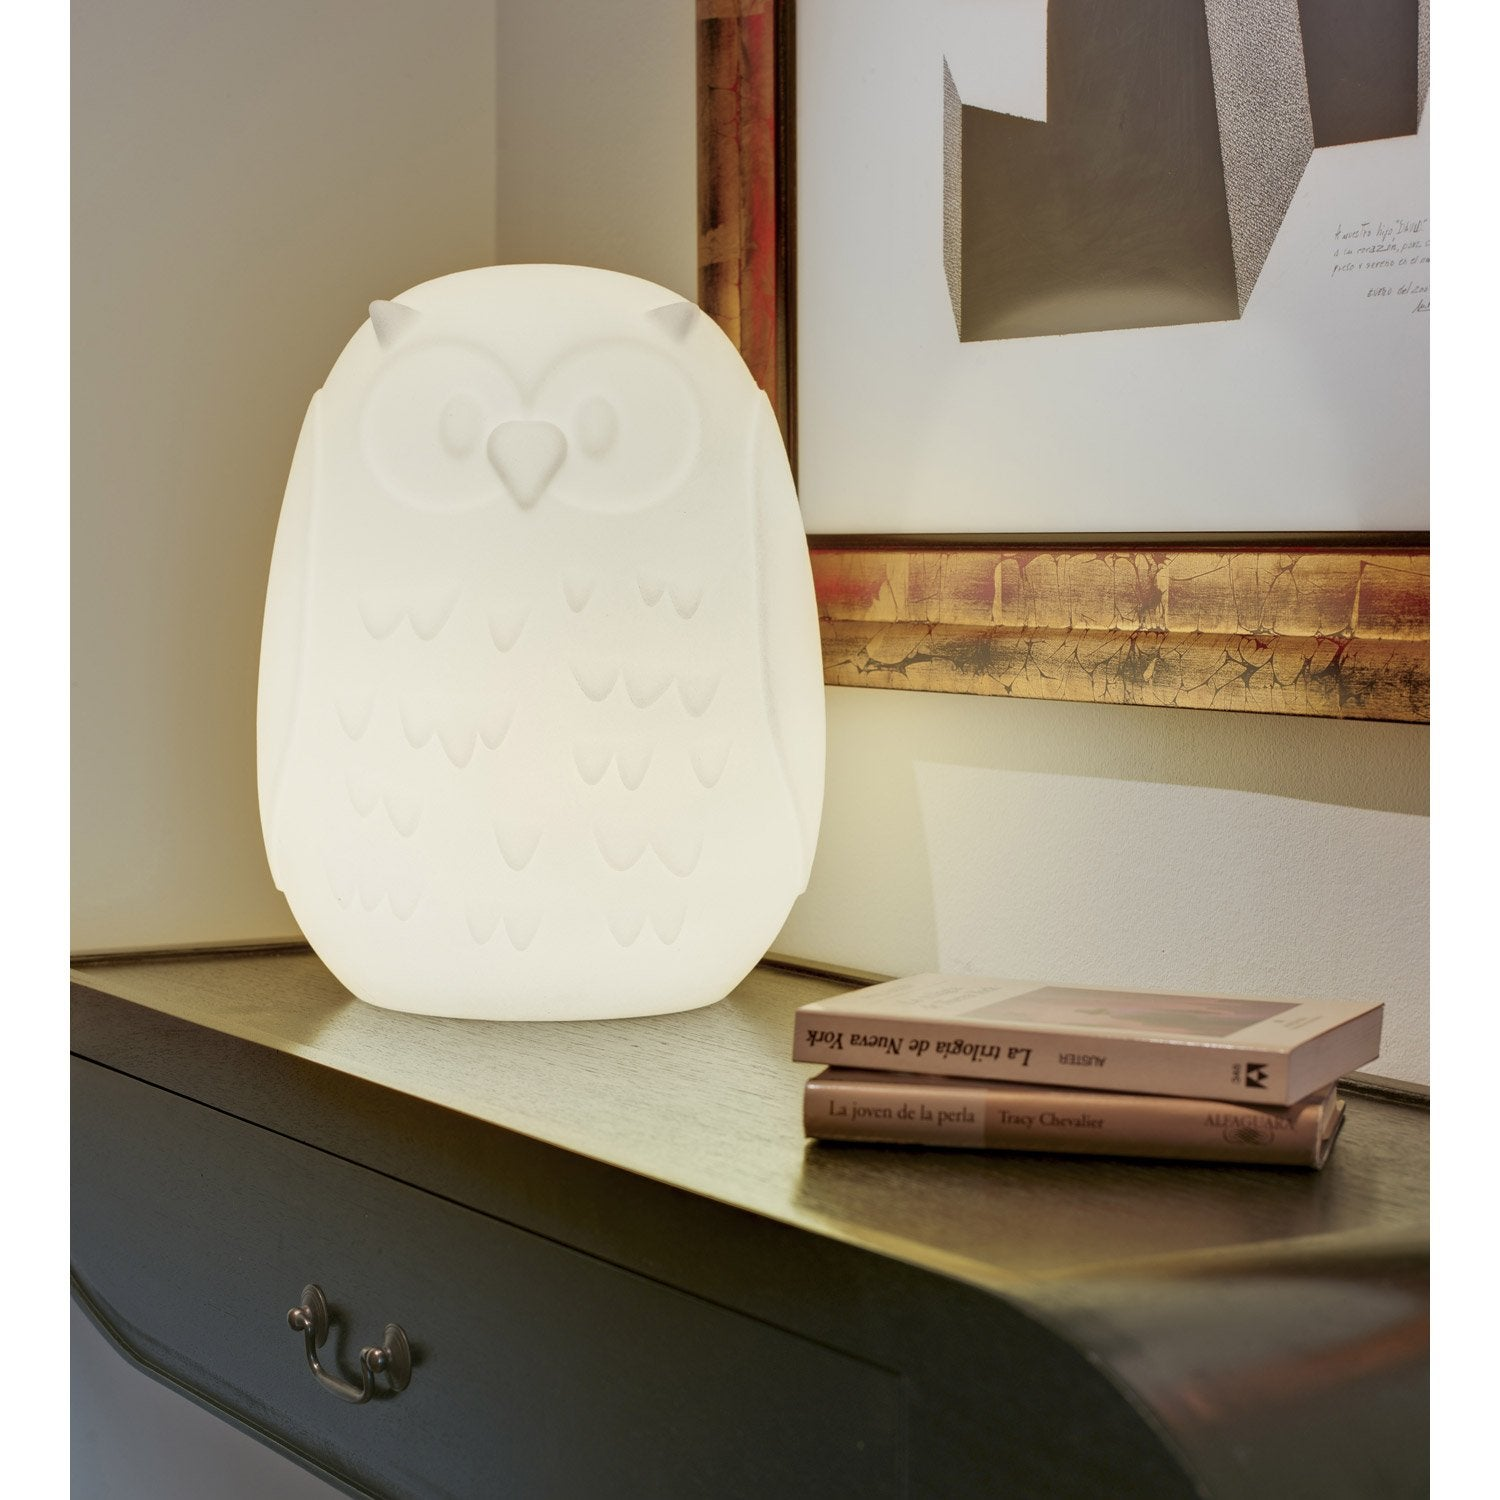 D coration lumineuse ext rieure gufo e27 15 w 880 lm - Guirlandes lumineuses exterieures leroy merlin ...